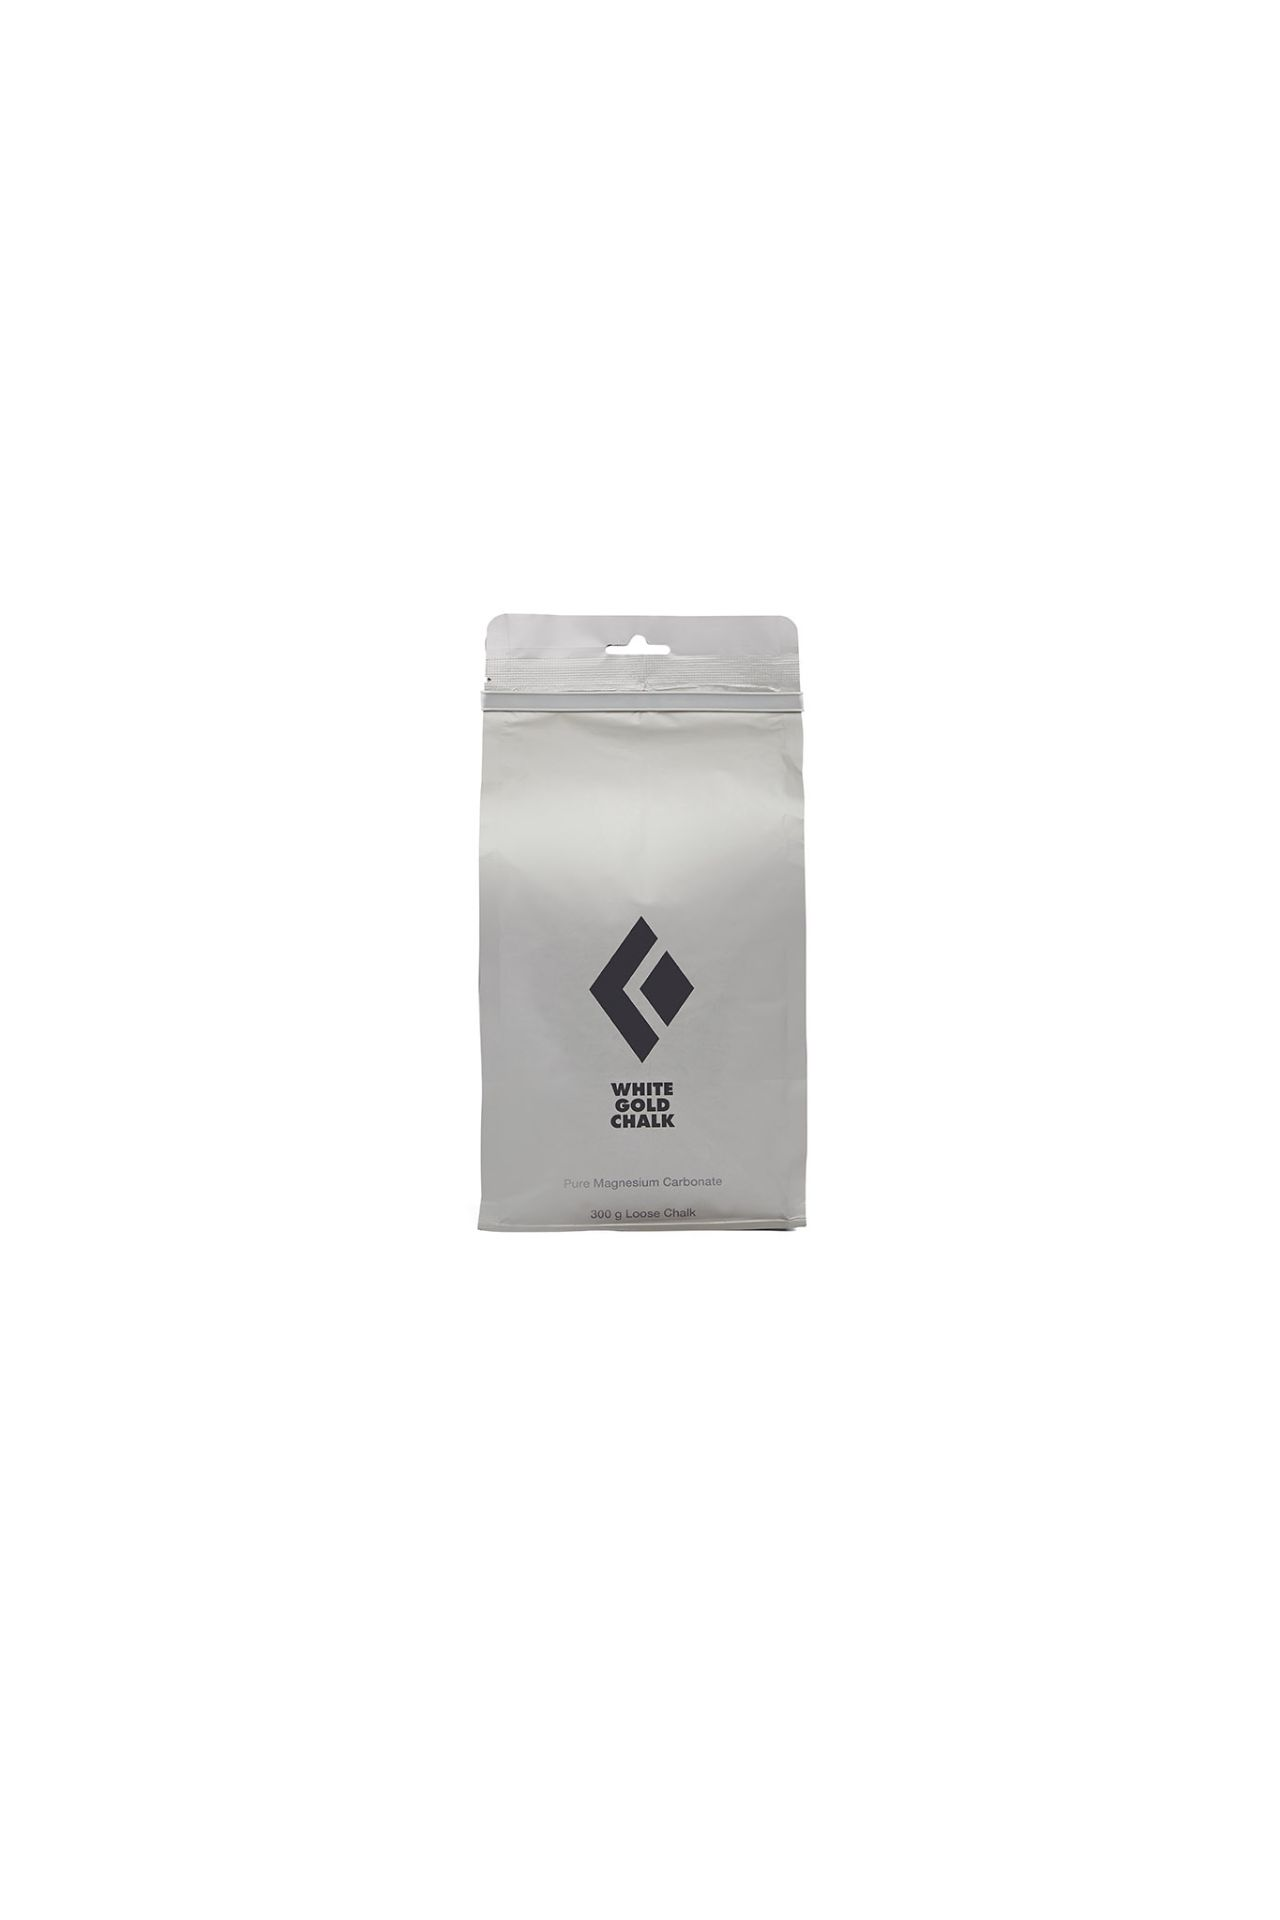 "Black Diamond ""Loose Chalk"" - 300g"